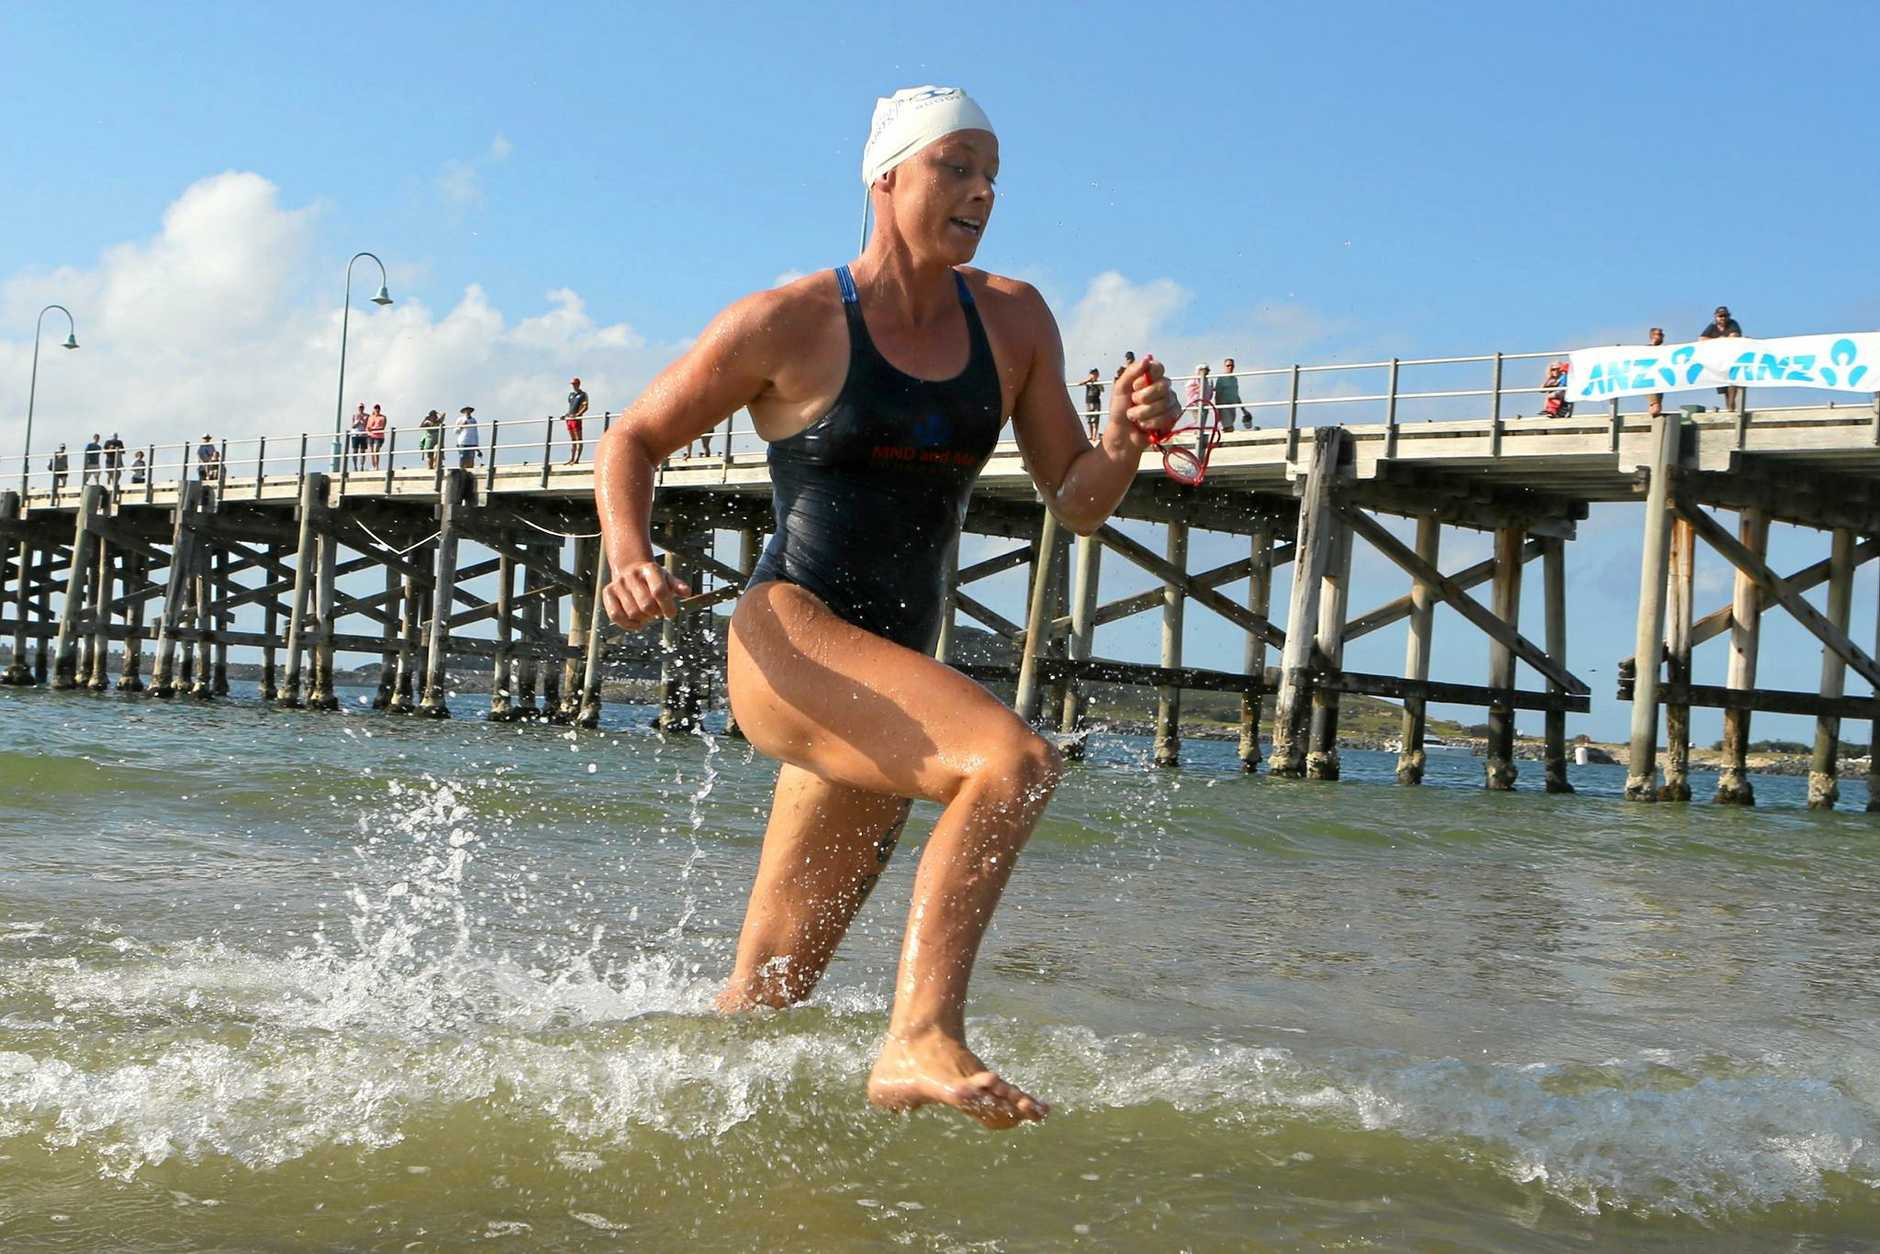 Bonnie Hancock emerges from the water to win the Coffs Ocean Swim.